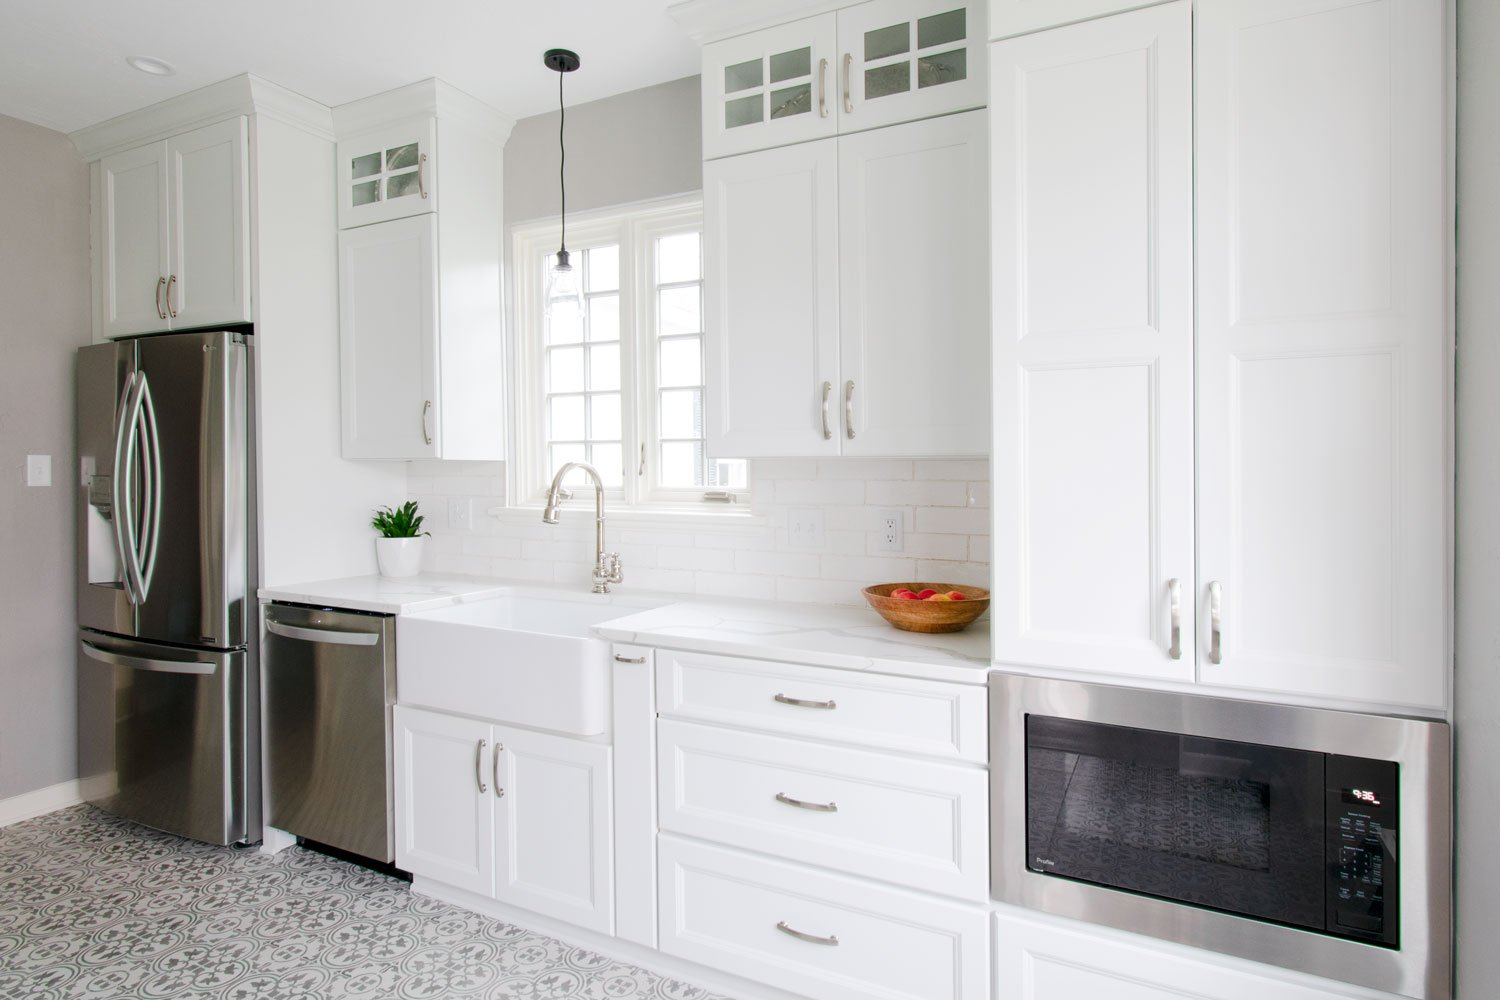 white cabinetry and counters in Wauwatosa home